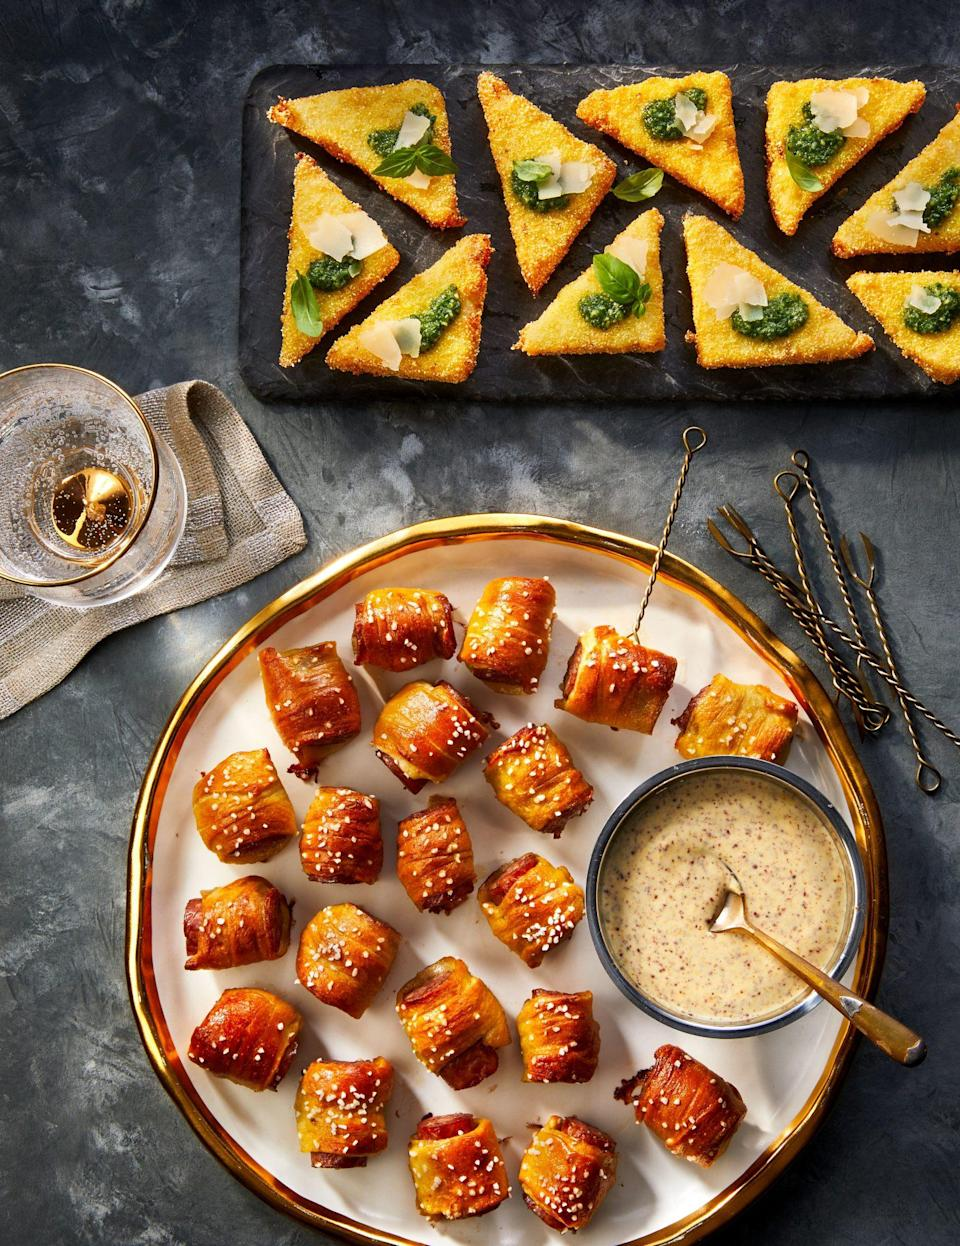 """<p><strong>Recipe: <a href=""""https://www.southernliving.com/recipes/smoked-sausage-pretzel-bites"""" rel=""""nofollow noopener"""" target=""""_blank"""" data-ylk=""""slk:Smoked Sausage Pretzel Bites"""" class=""""link rapid-noclick-resp"""">Smoked Sausage Pretzel Bites</a></strong></p> <p>Prepared pizza dough and spicy smoked sausage come together to create pretzel bits that are packed with flavor in every bite. <br></p>"""